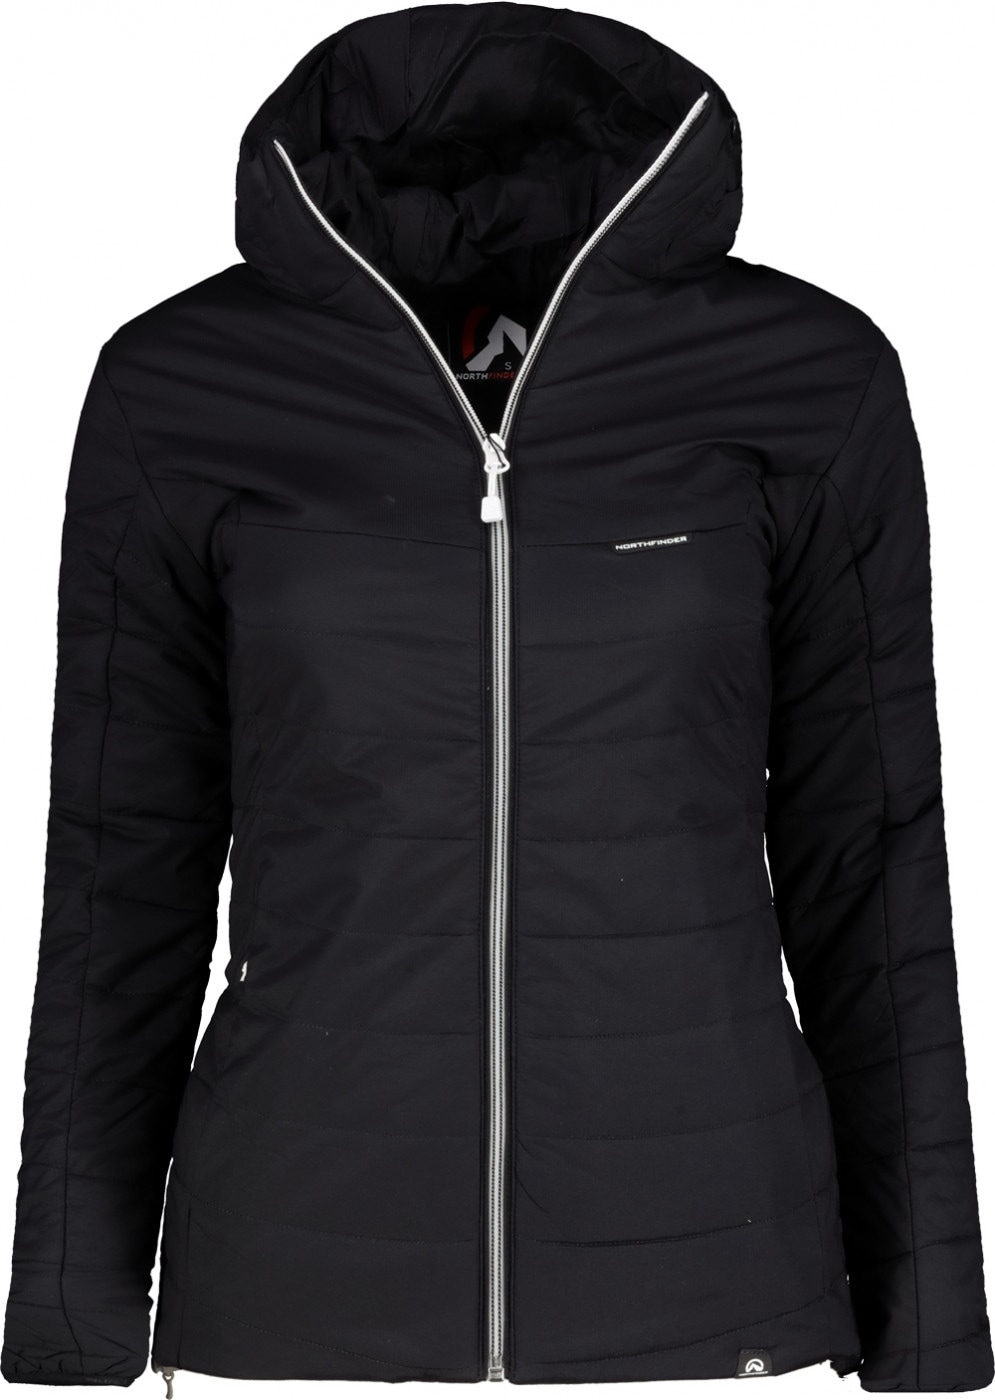 Women's outdoor  jacket NORTHFINDER KAILYN